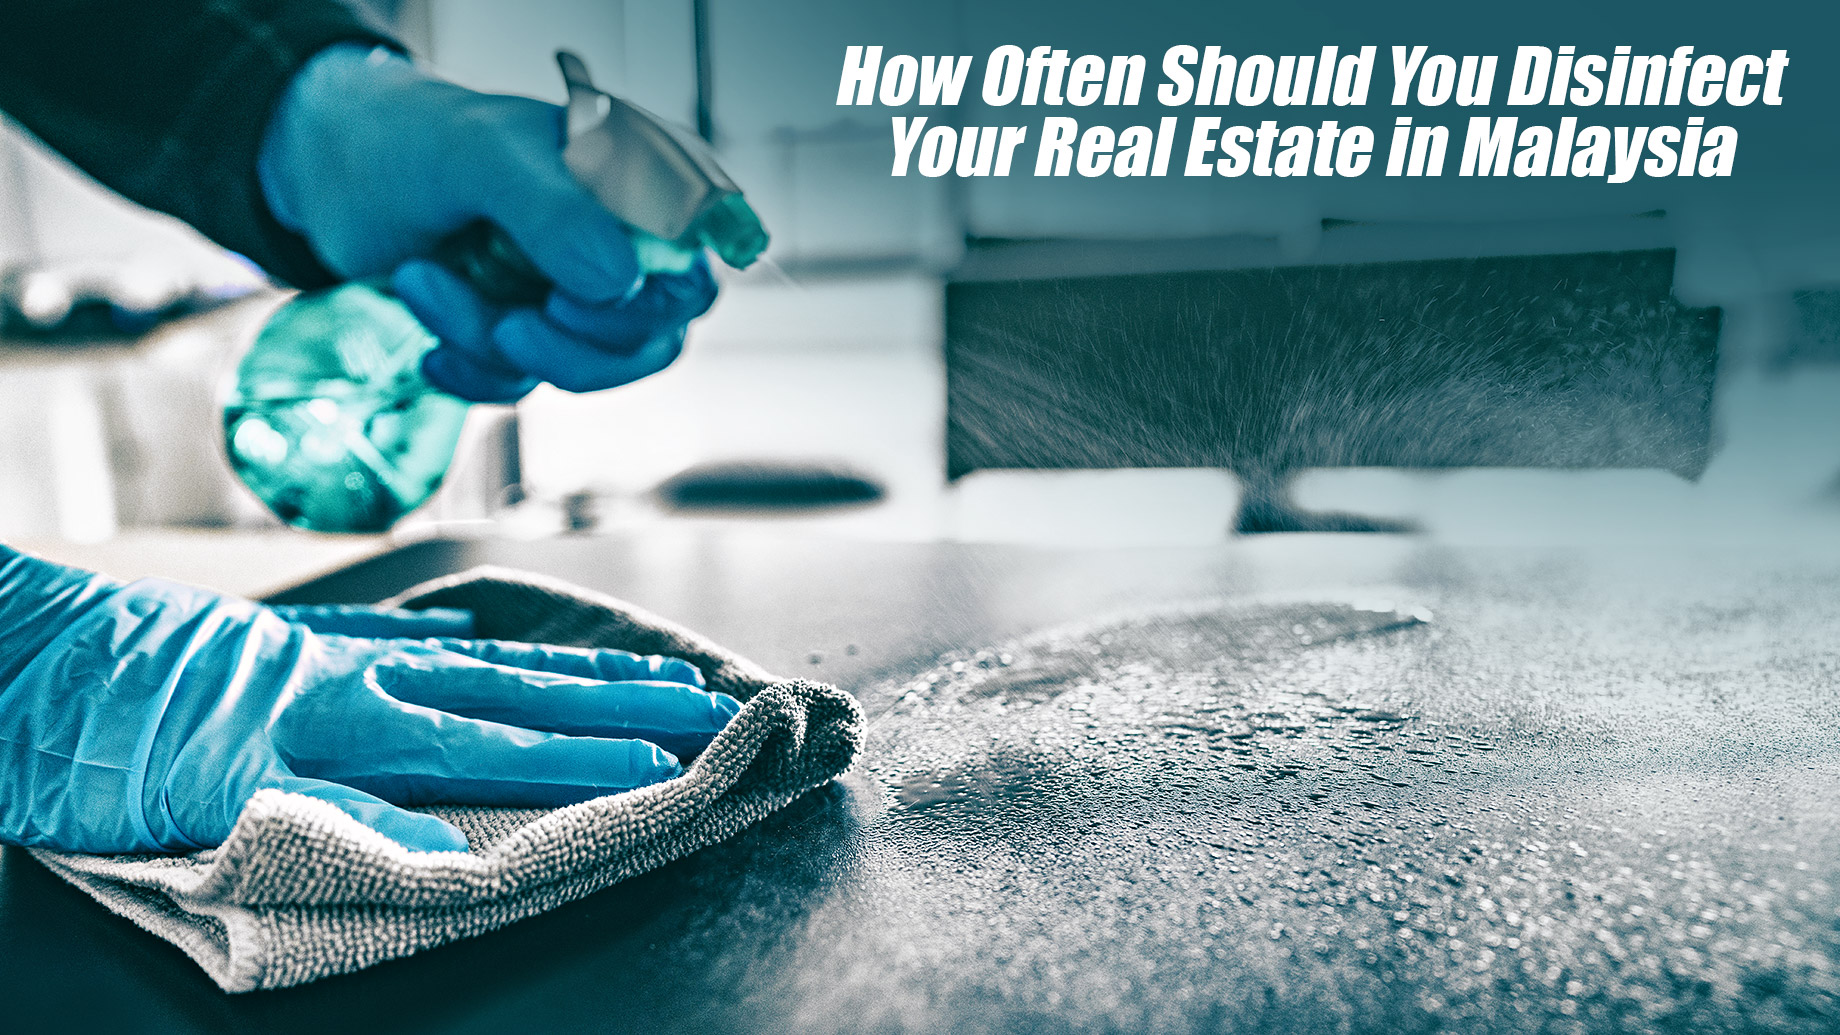 How Often Should You Disinfect Your Real Estate in Malaysia